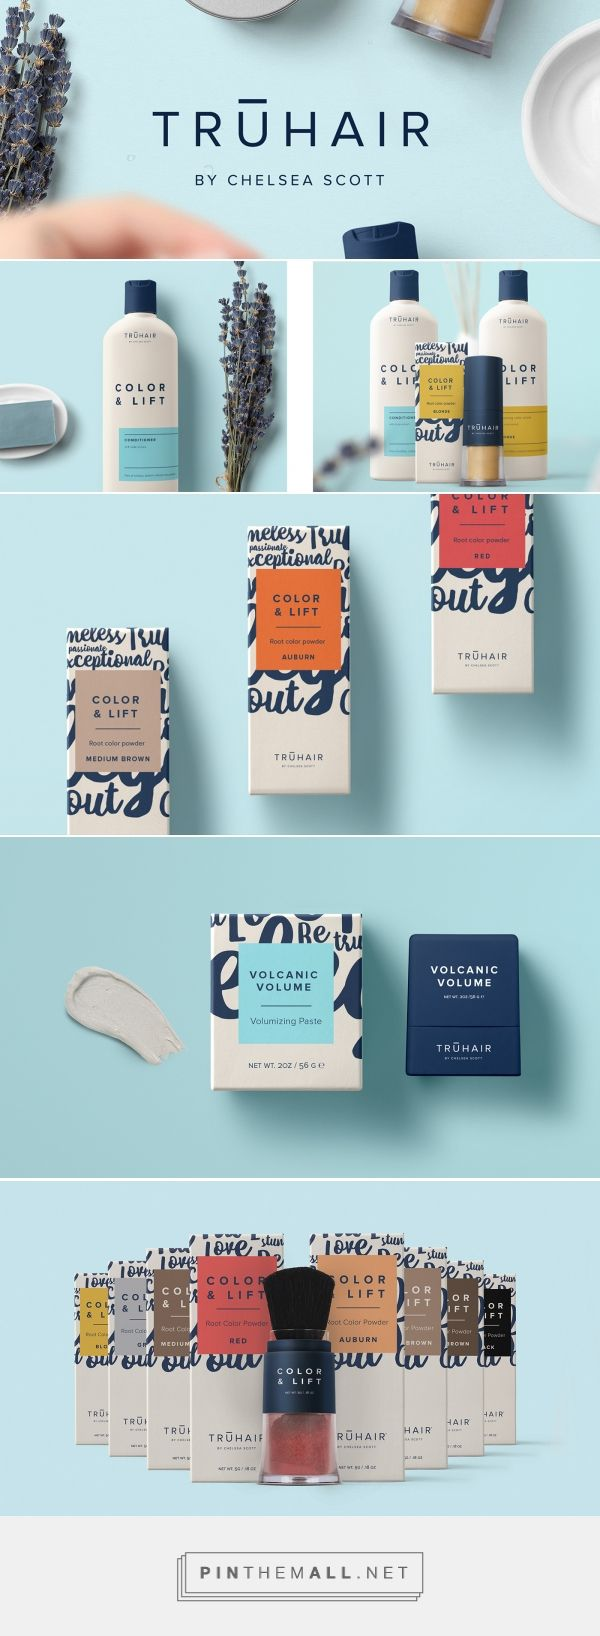 Truhair Hair Care Packaging by Hype Group | Fivestar Branding Agency – Design and Branding Agency & Curated Inspiration Gallery